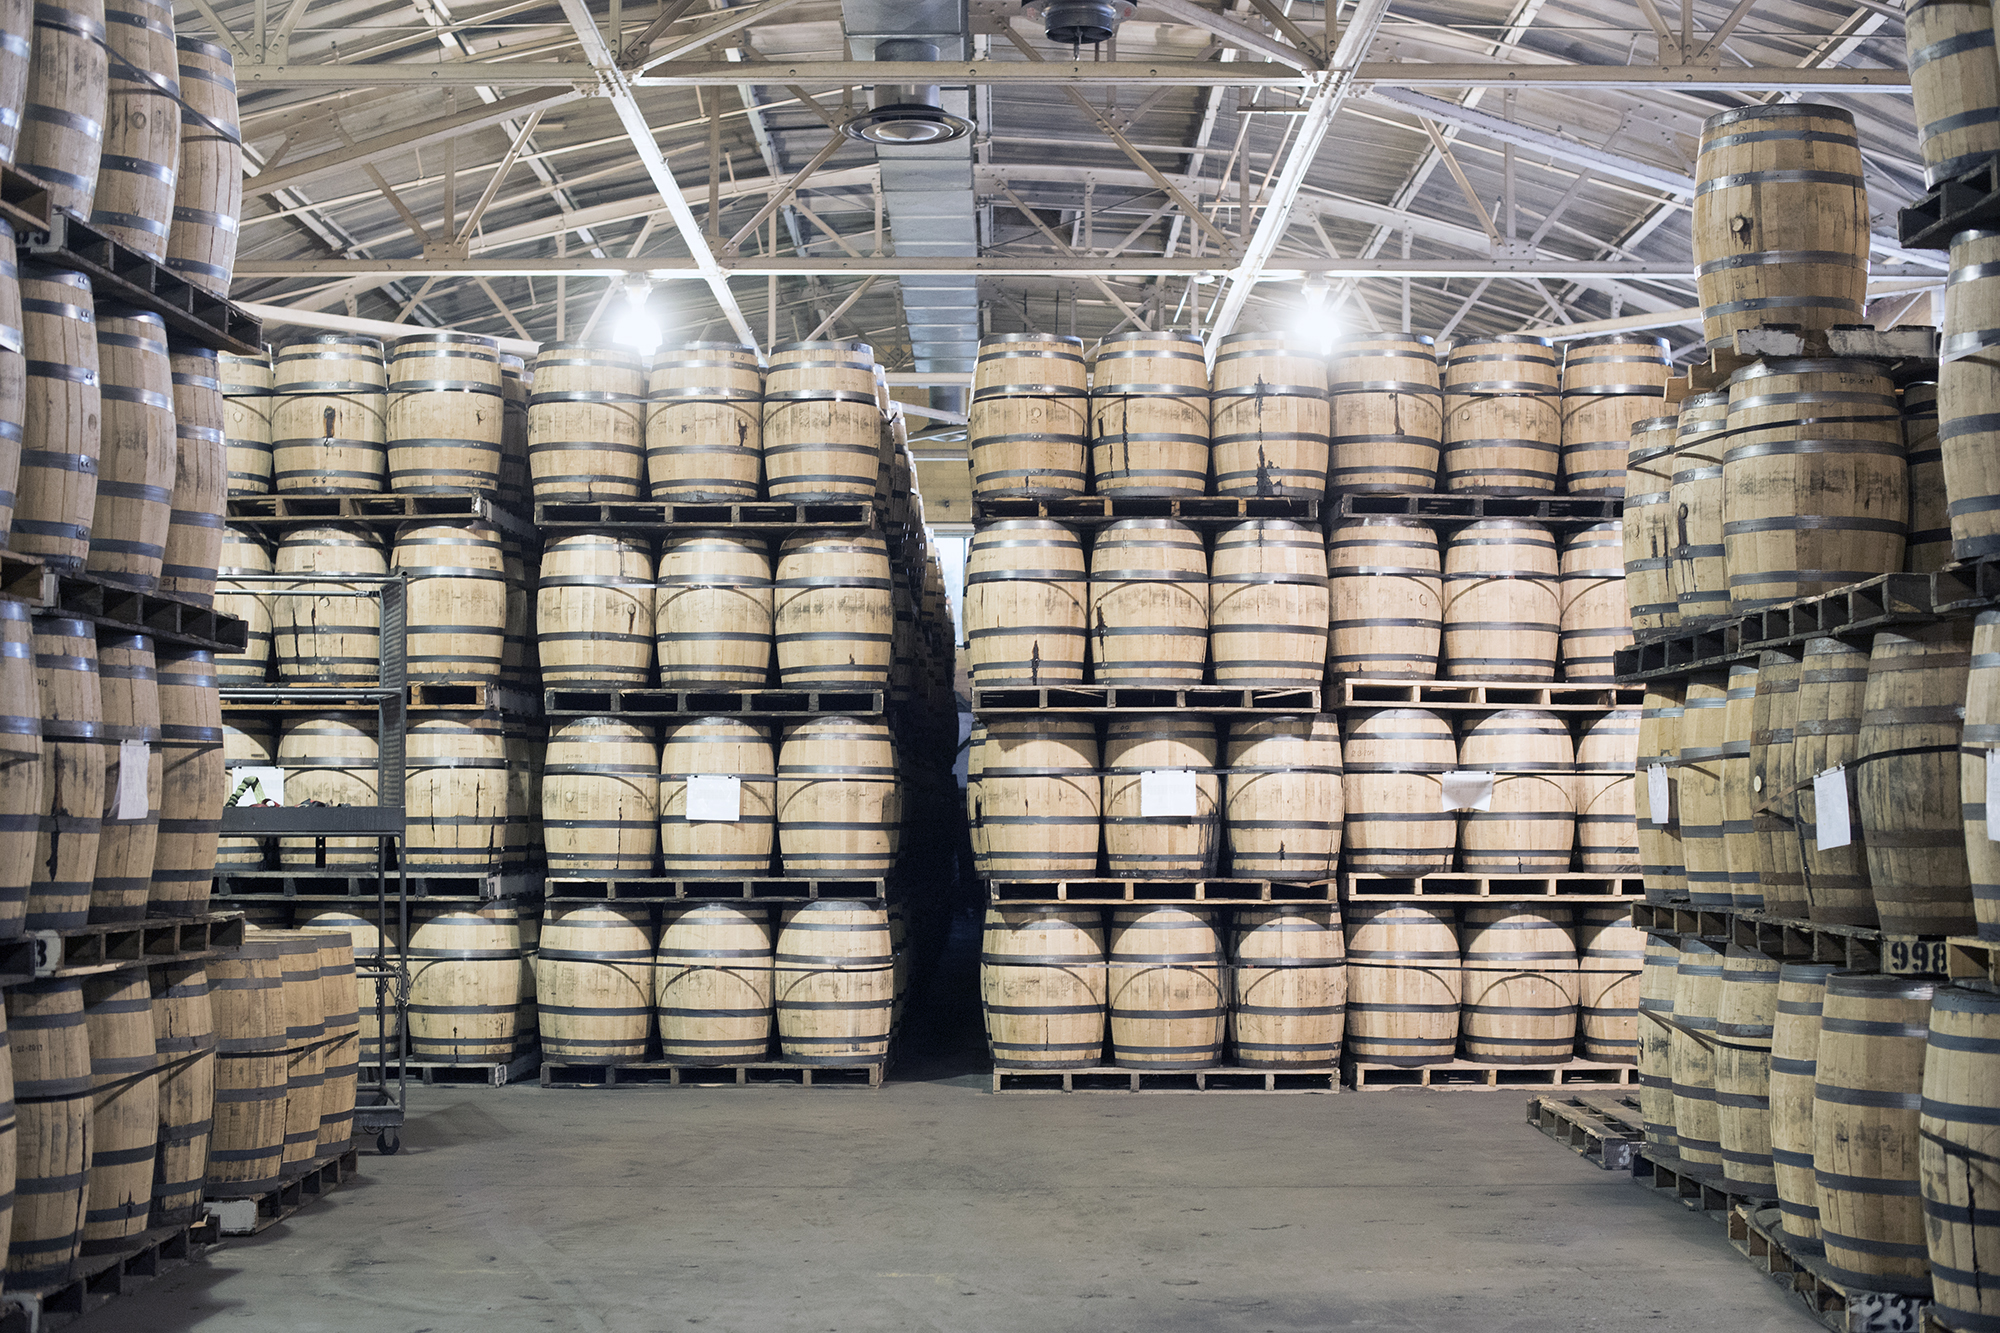 whiskey-barrels-at-a-smith-bowman-distlillery-fredericksburg-va-photo-by-jessica-van-dop-dejesus.jpg